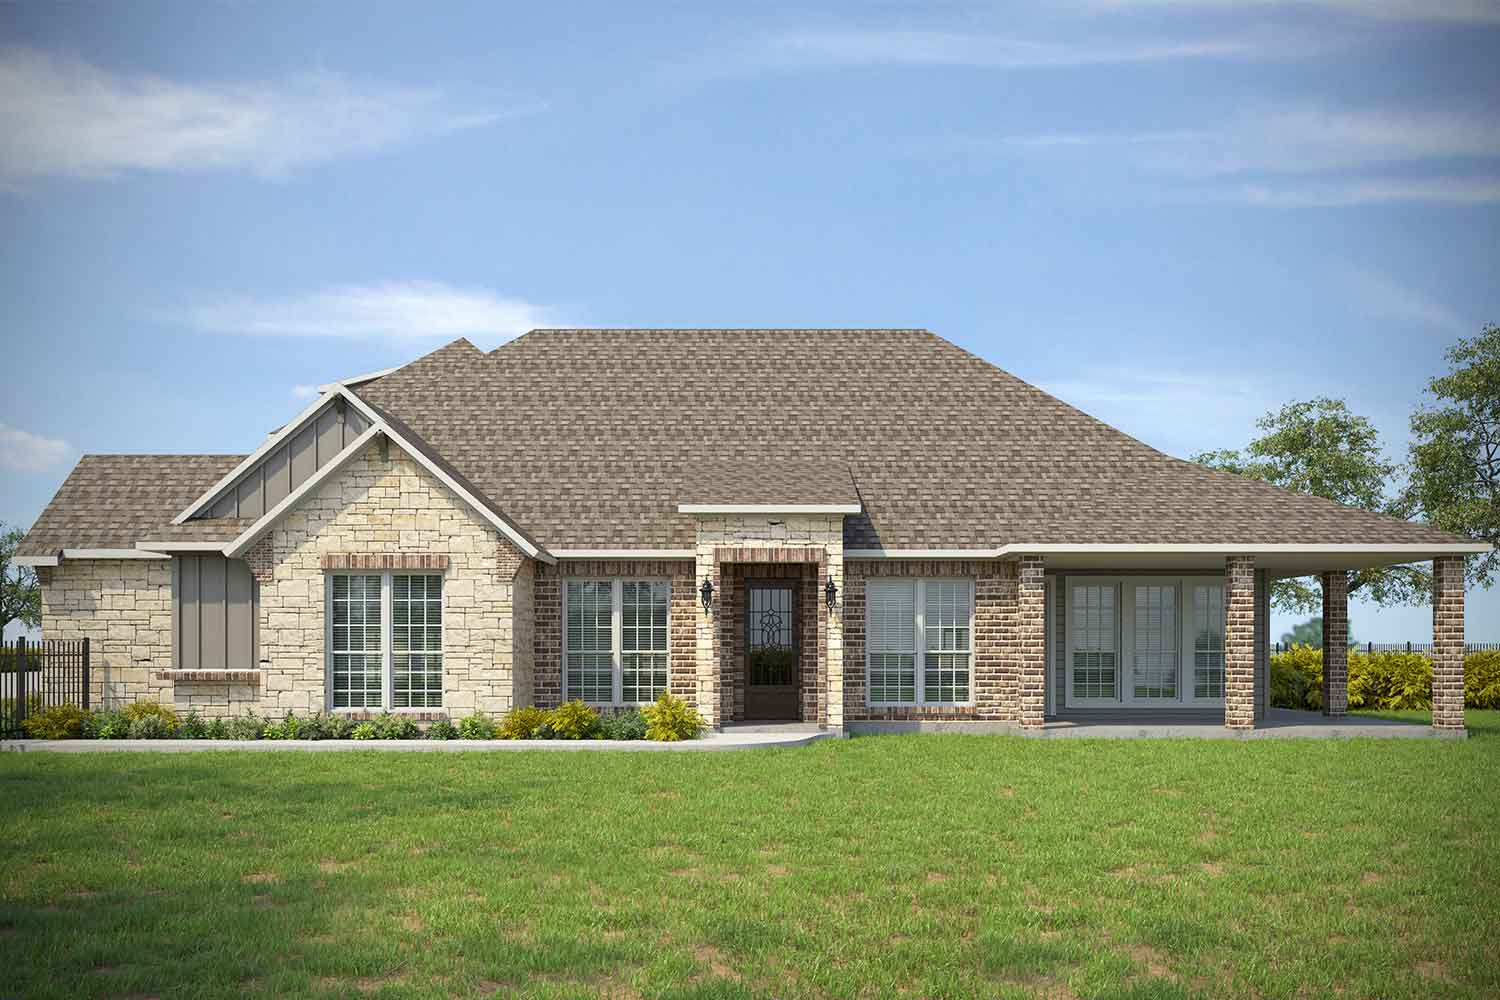 New Homes for Sale in Georgetown TX | 1413 Horizon View Dr